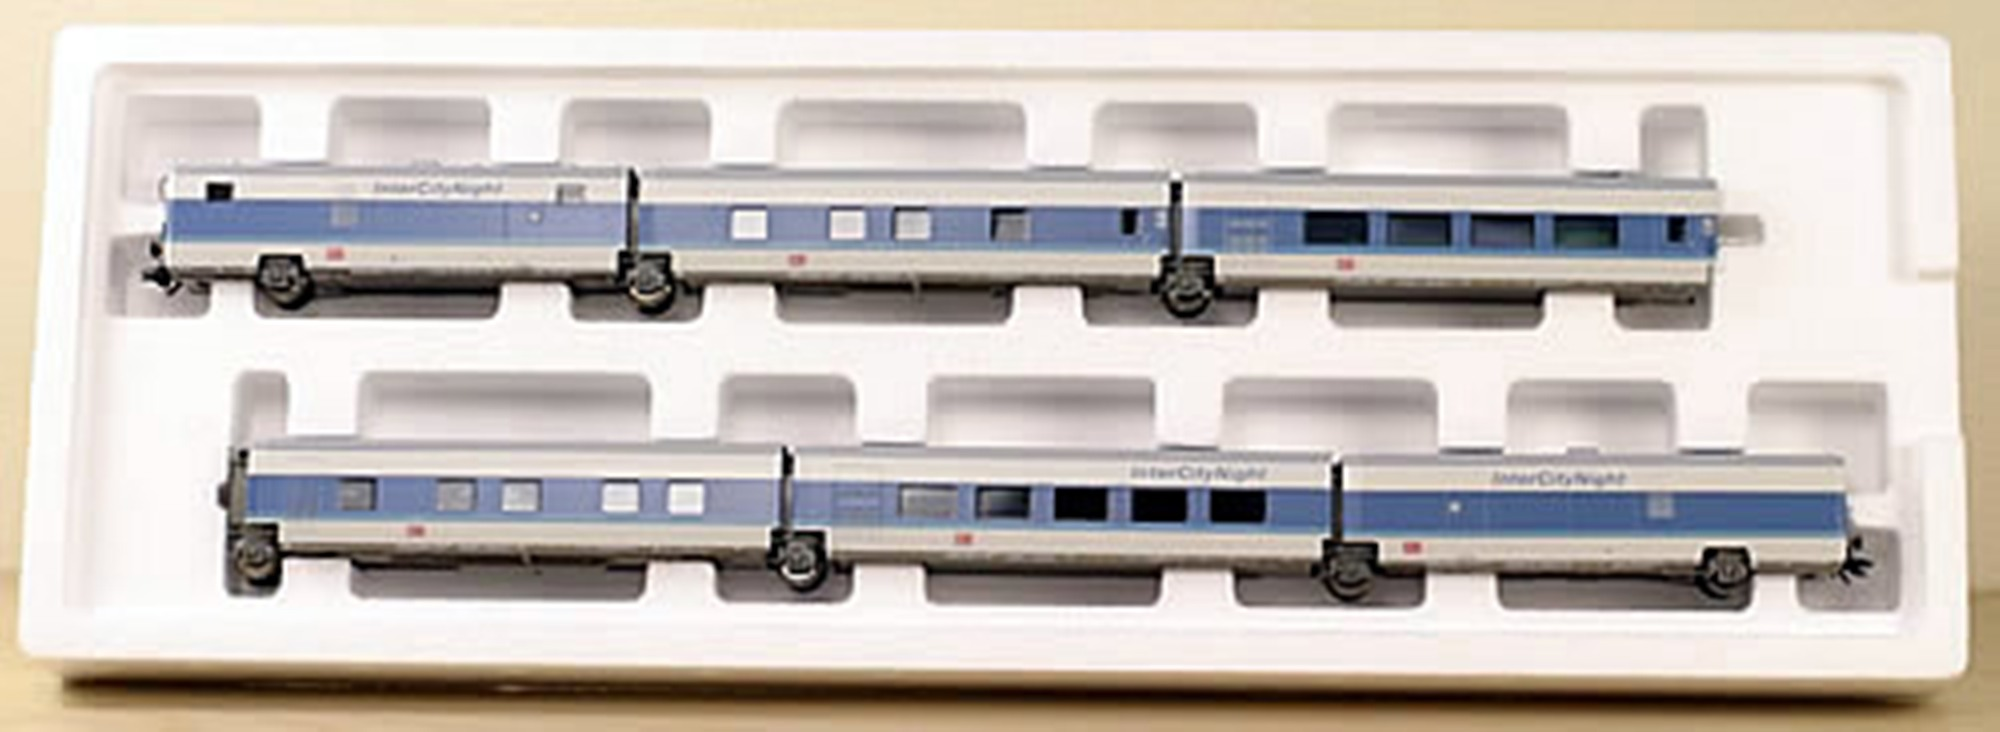 Maerklin 41771 - InterCityNight, Grundset 6 Wagen